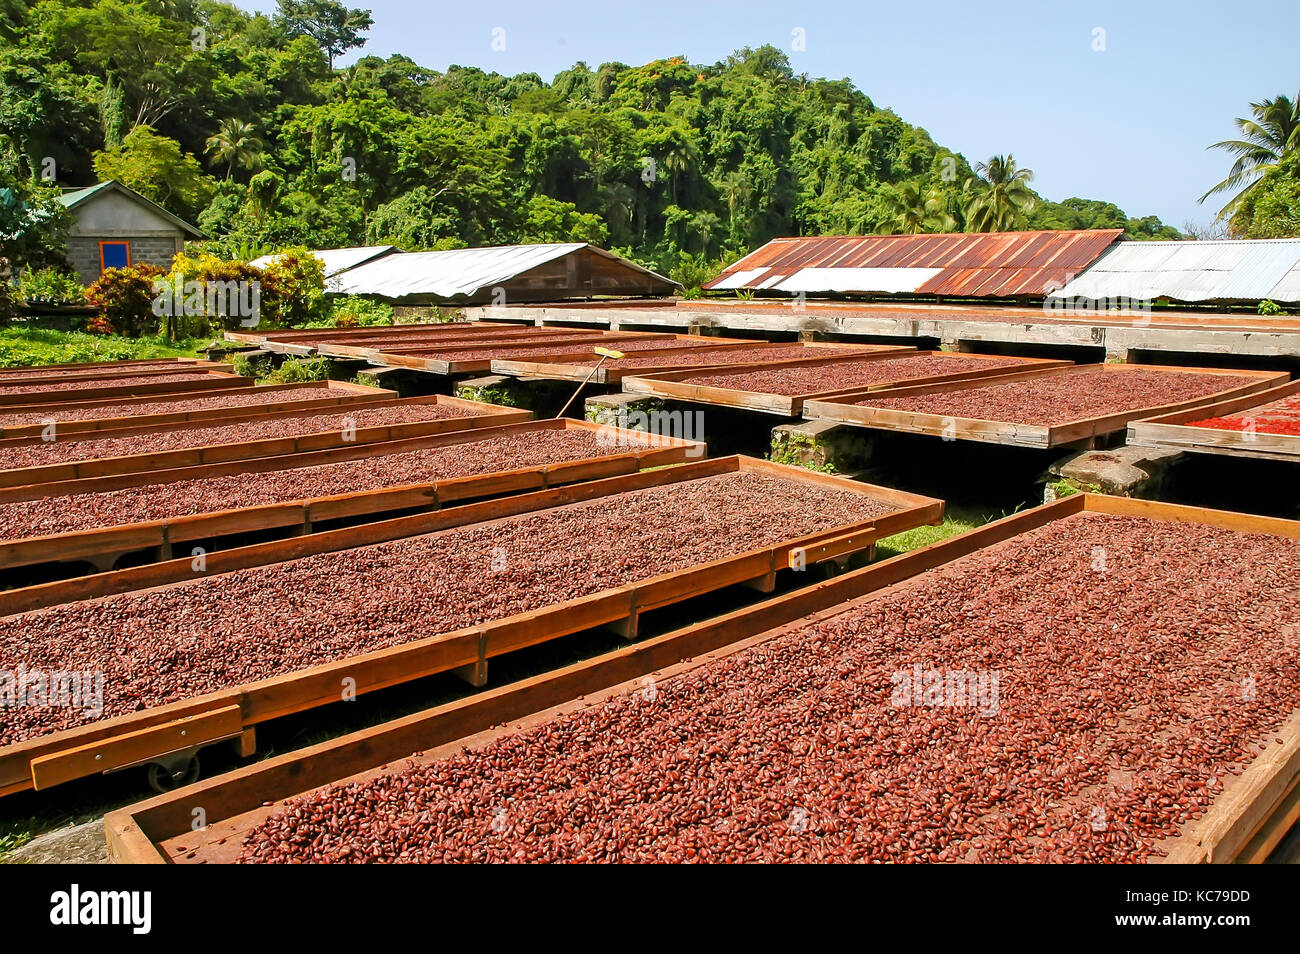 Cocoa beans drying in the sun on large trays at Belmont Estate Grenada - Stock Image